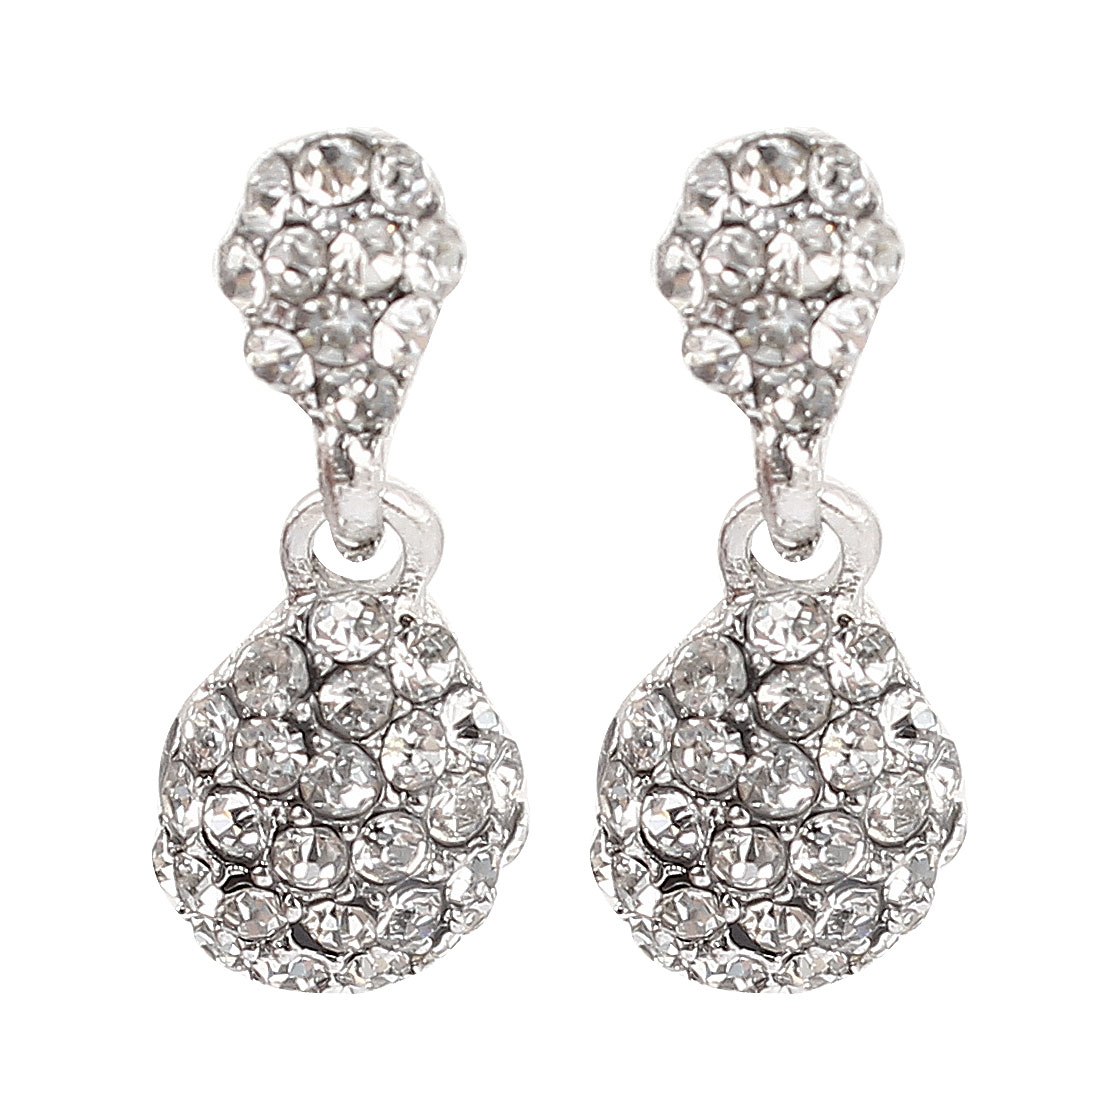 Pair Silver Tone Ear Decor Bling Rhinestone Accent Stud Earrings for Lady